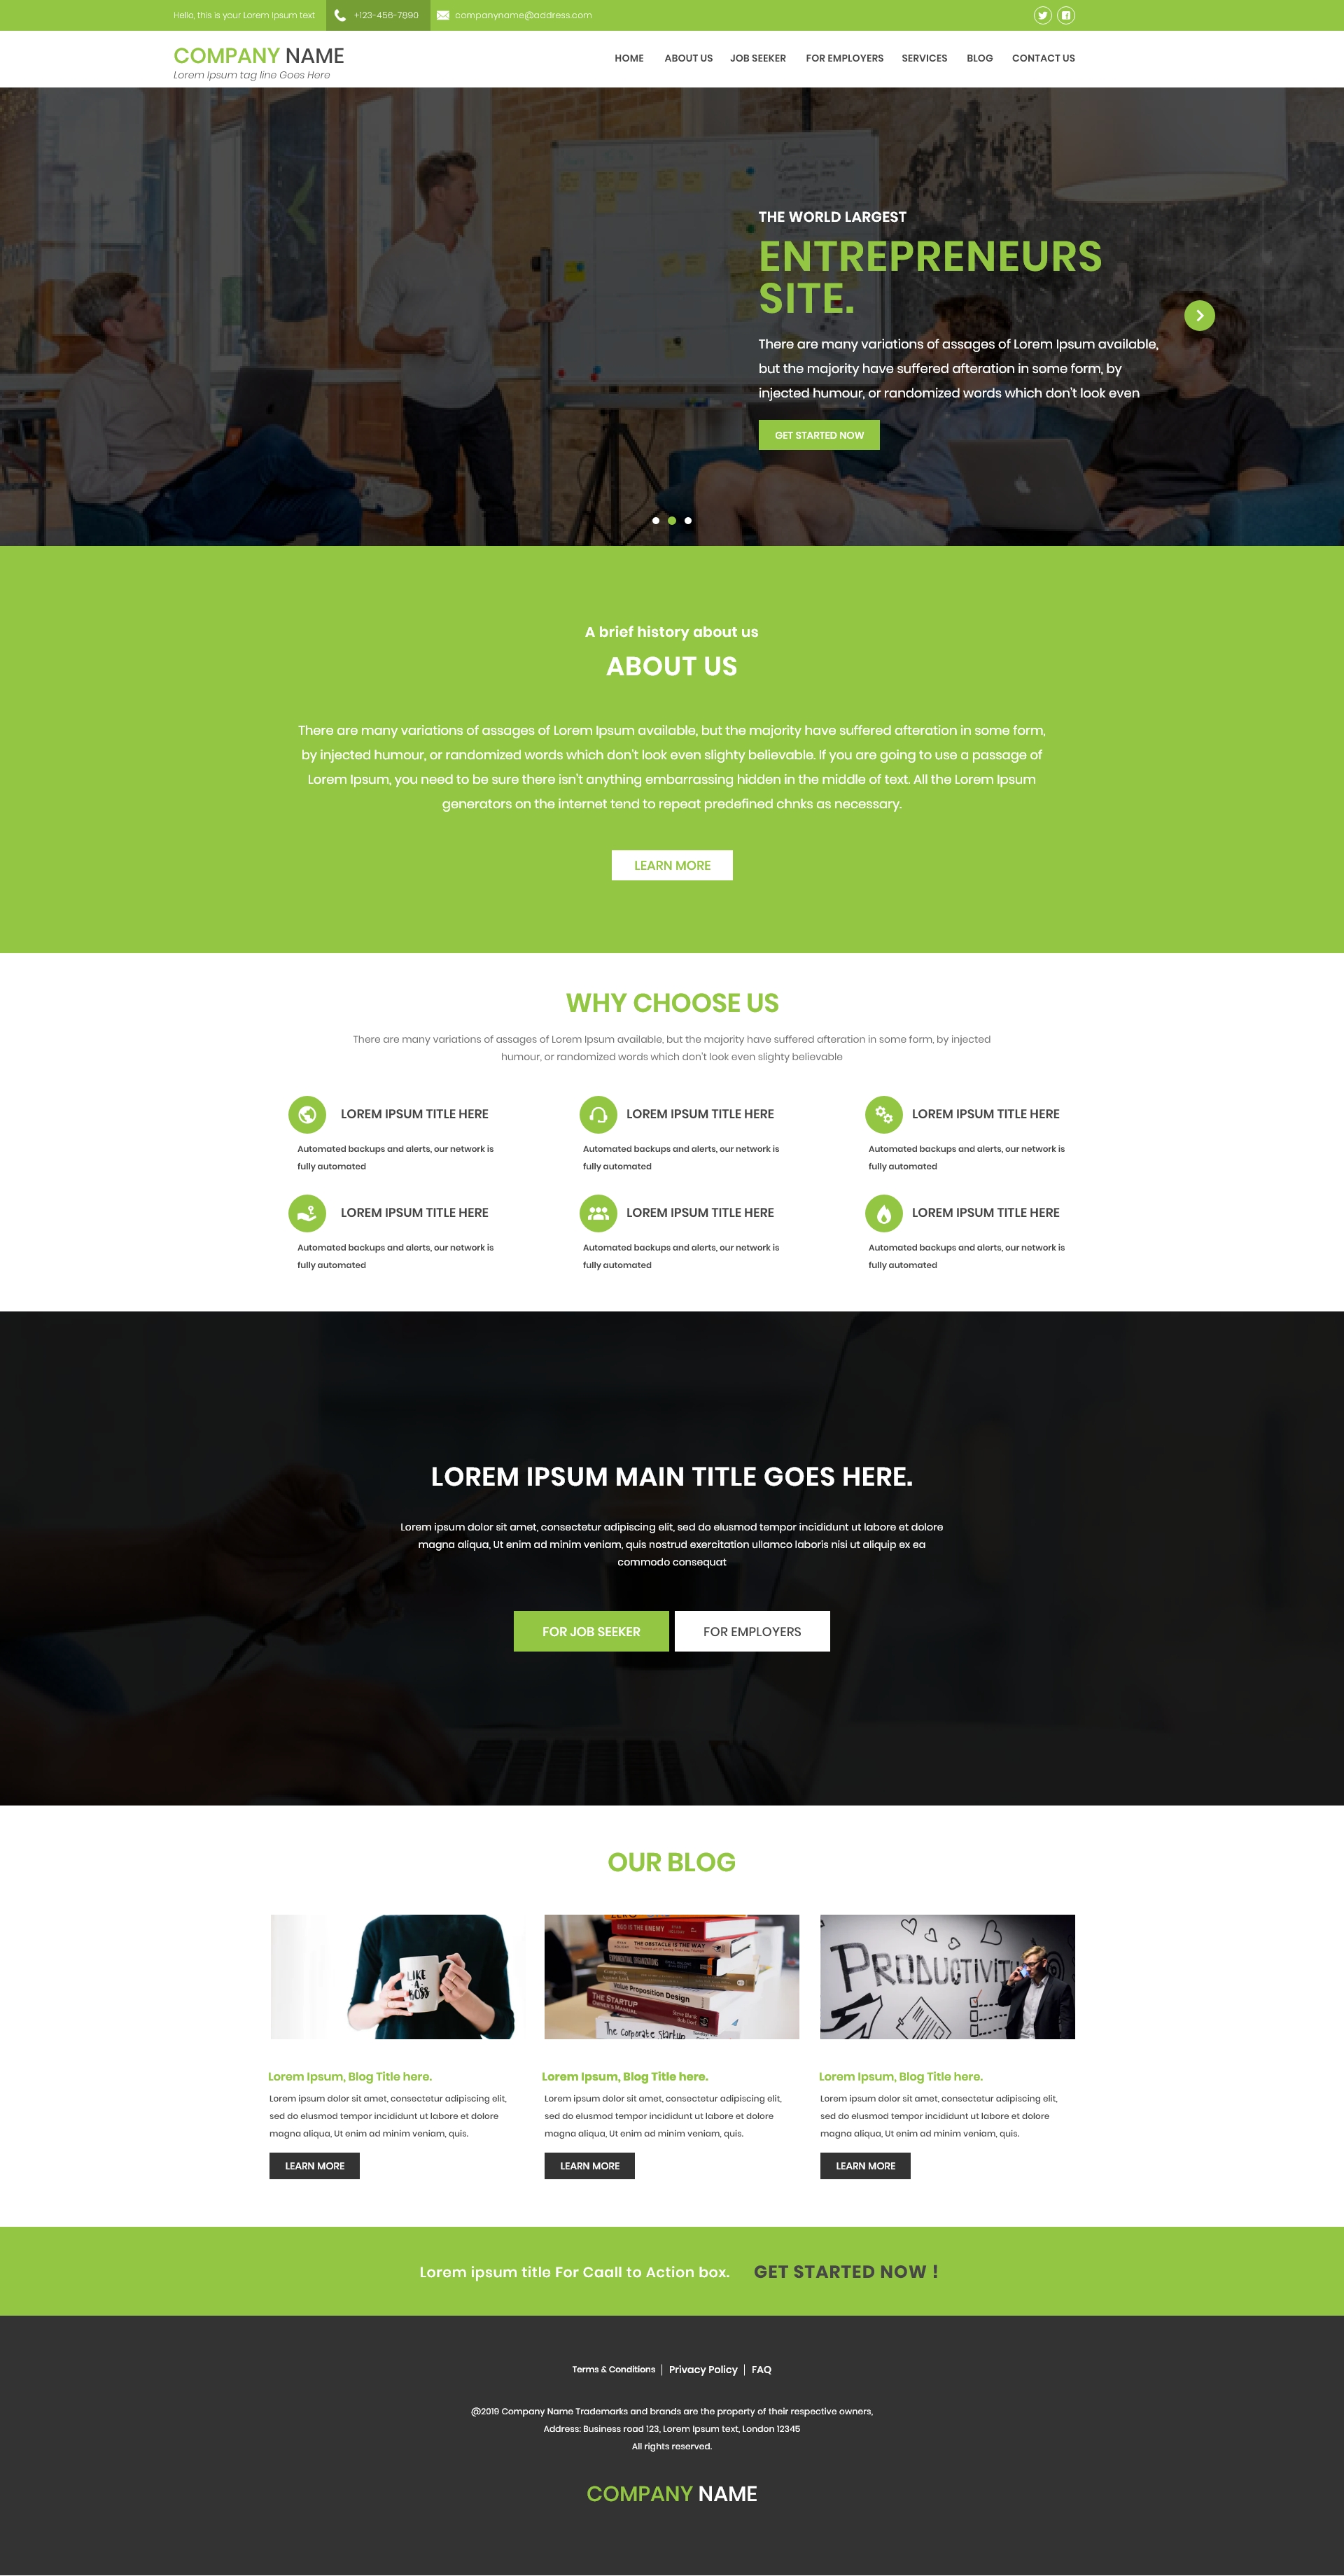 Professional Serious Web Design For Indian School Of Business By Ubaidillah 3 Design 23264802